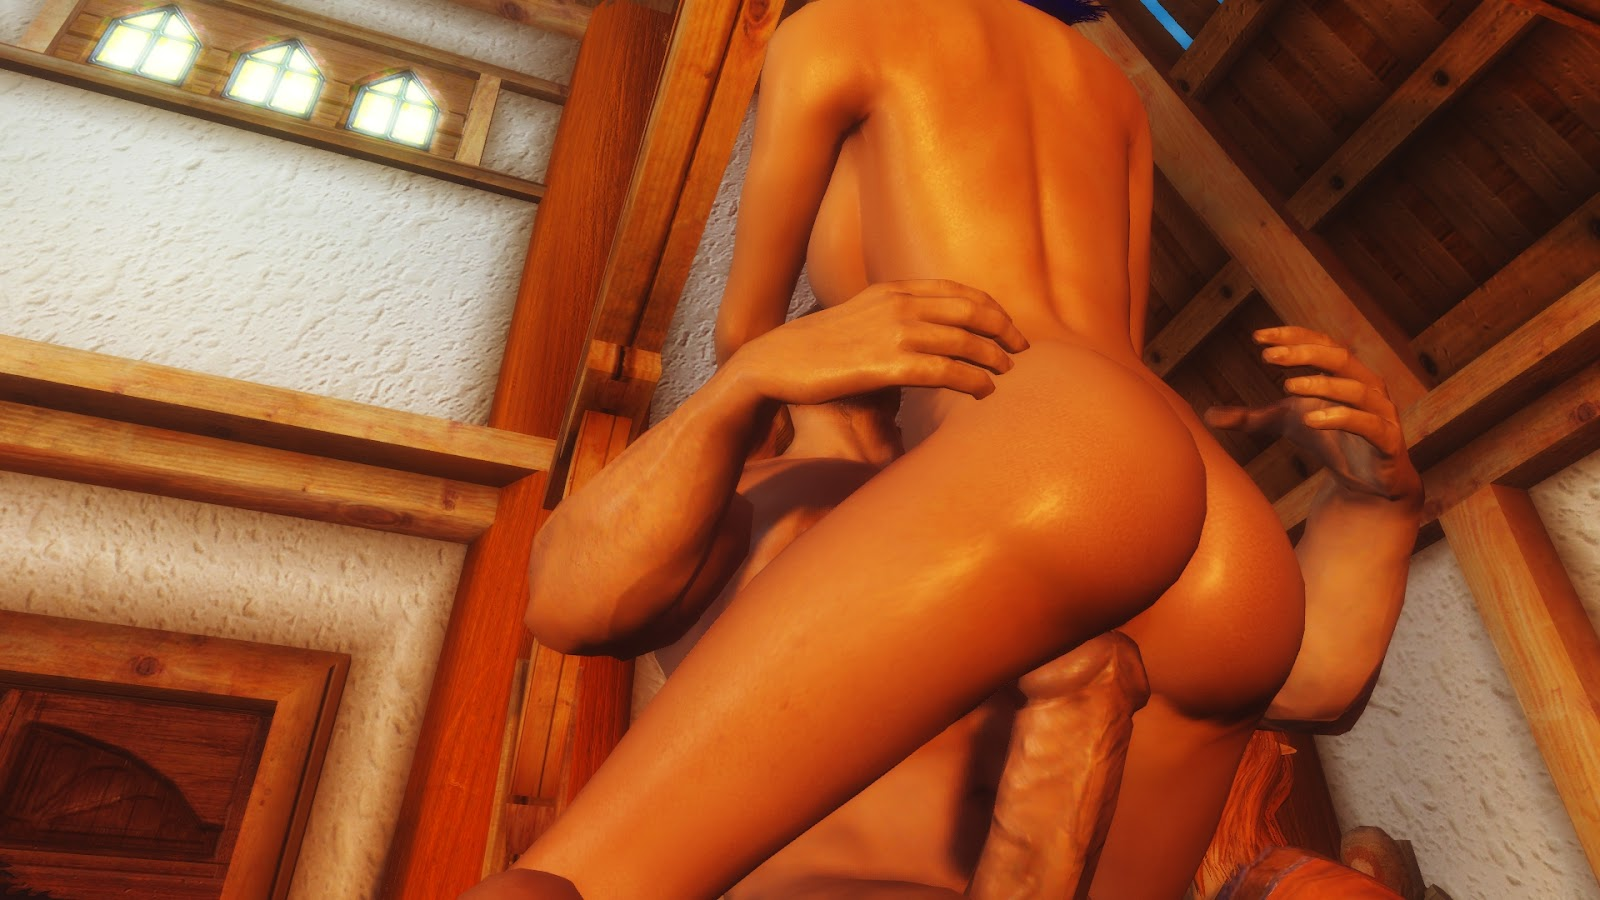 Adult only skyrim mods exploited porn star